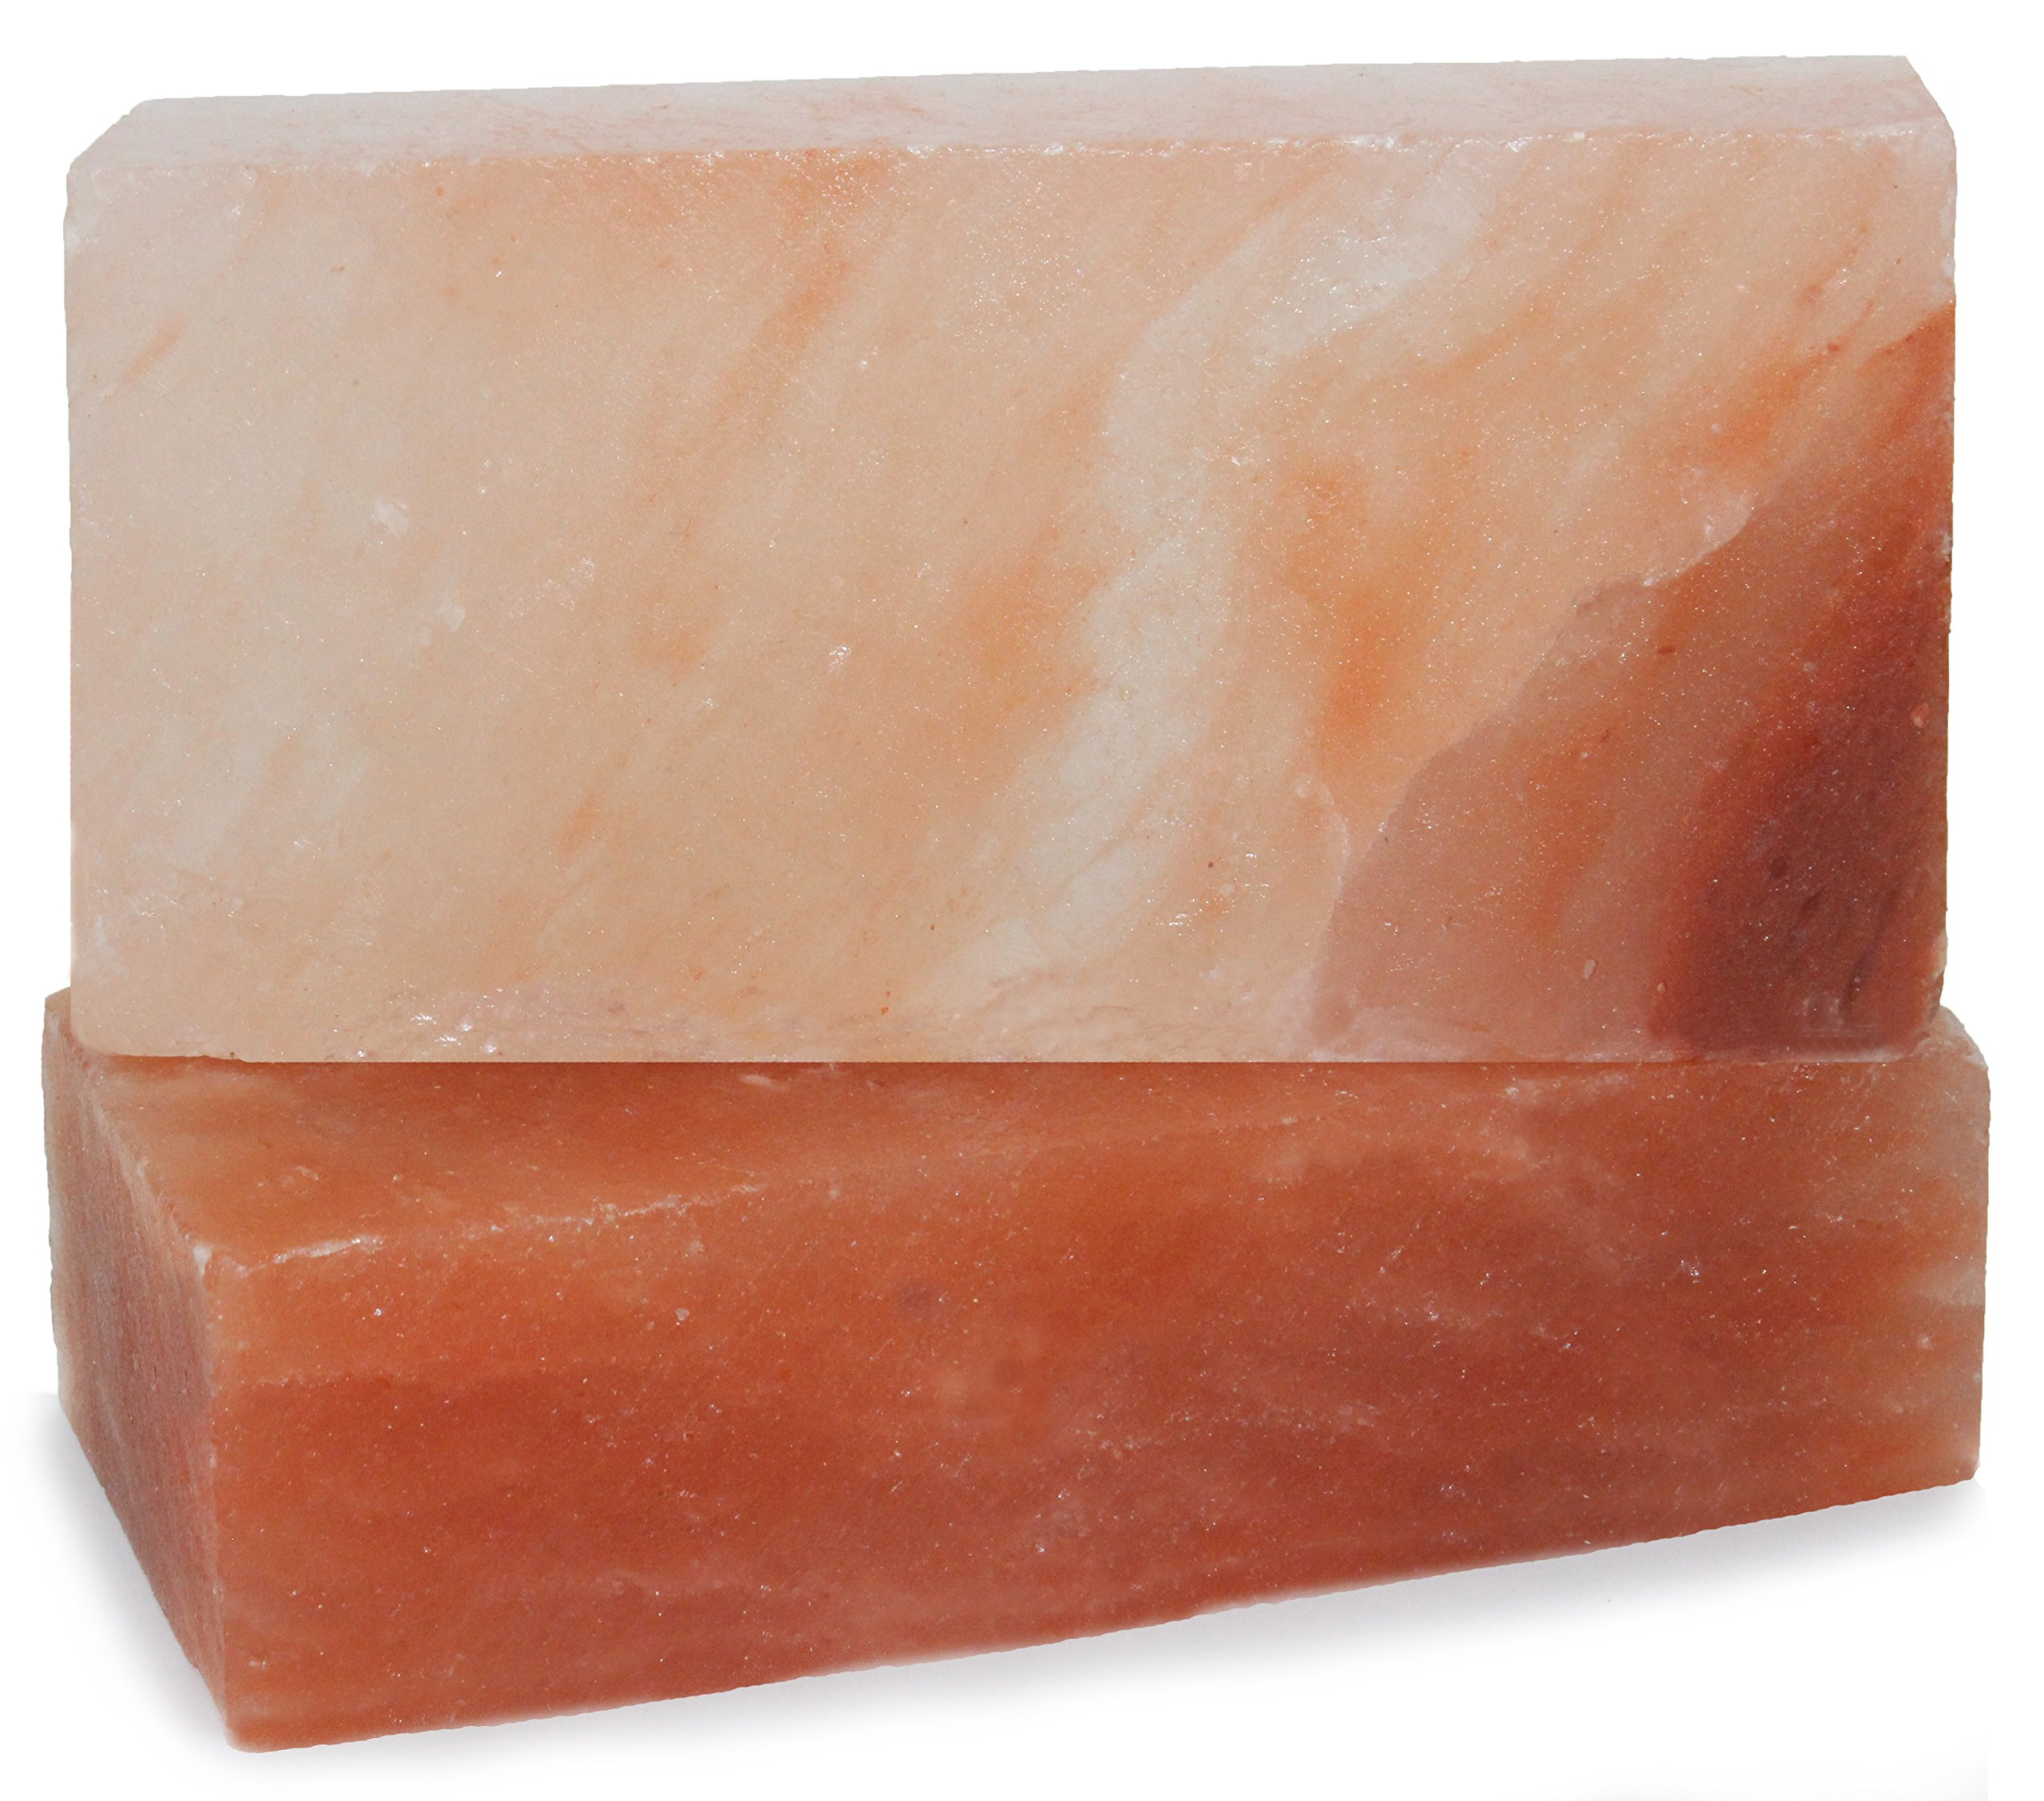 IndusClassic RSP-17 Himalayan Salt Block, Plate, Slab for Cooking, Grilling, Seasoning, And Serving (8 X 4 X 2 Set Of 2) by Indus Classic